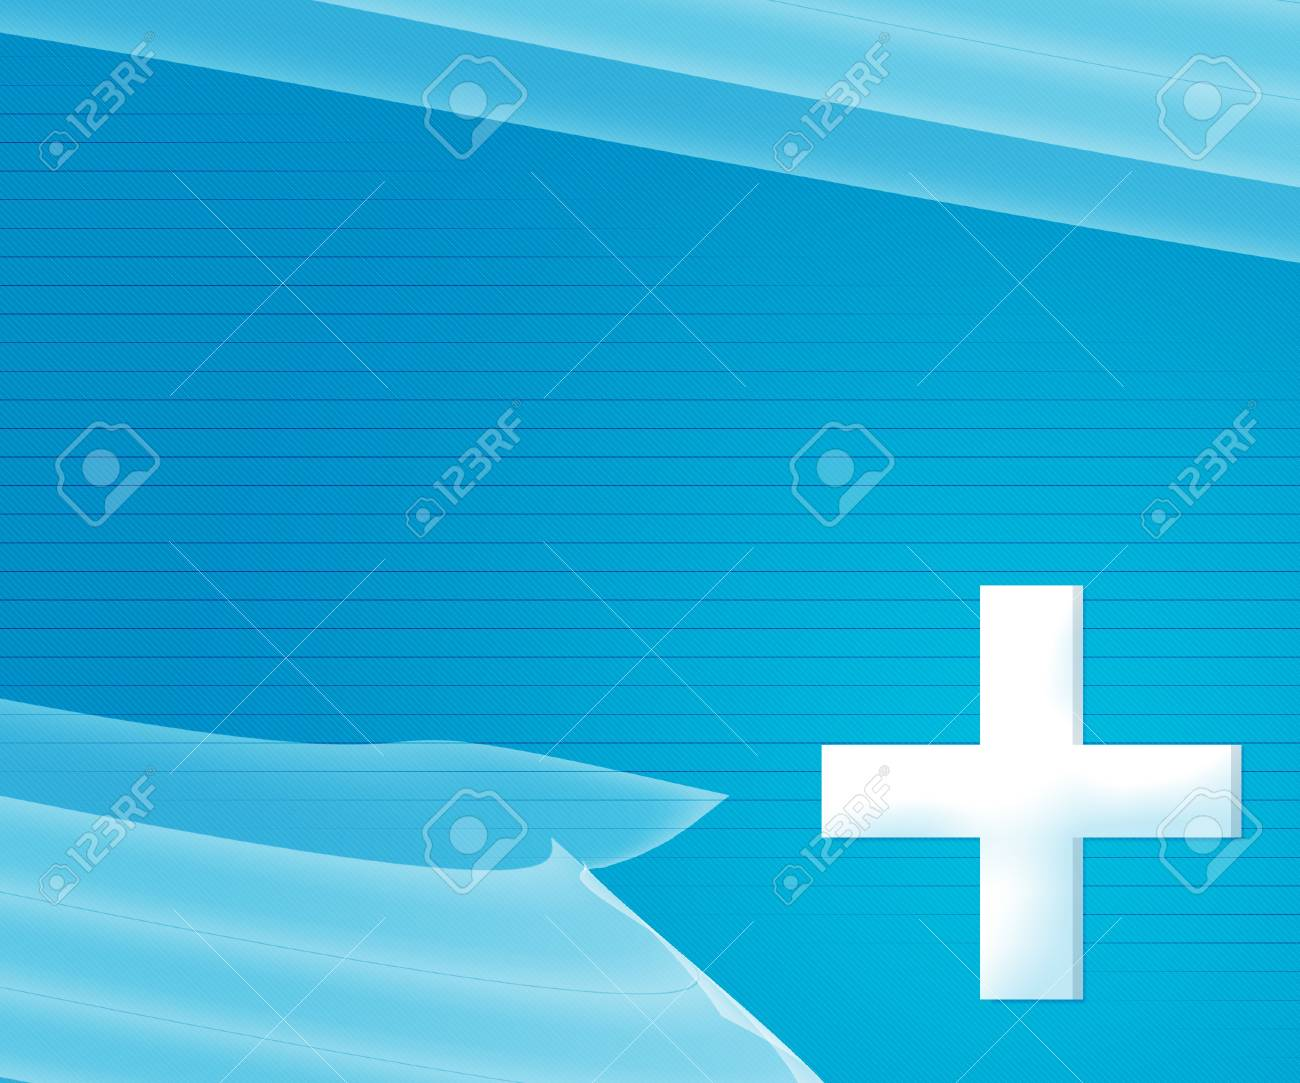 Blue Simple Medical Background Stock Photo - 17075403